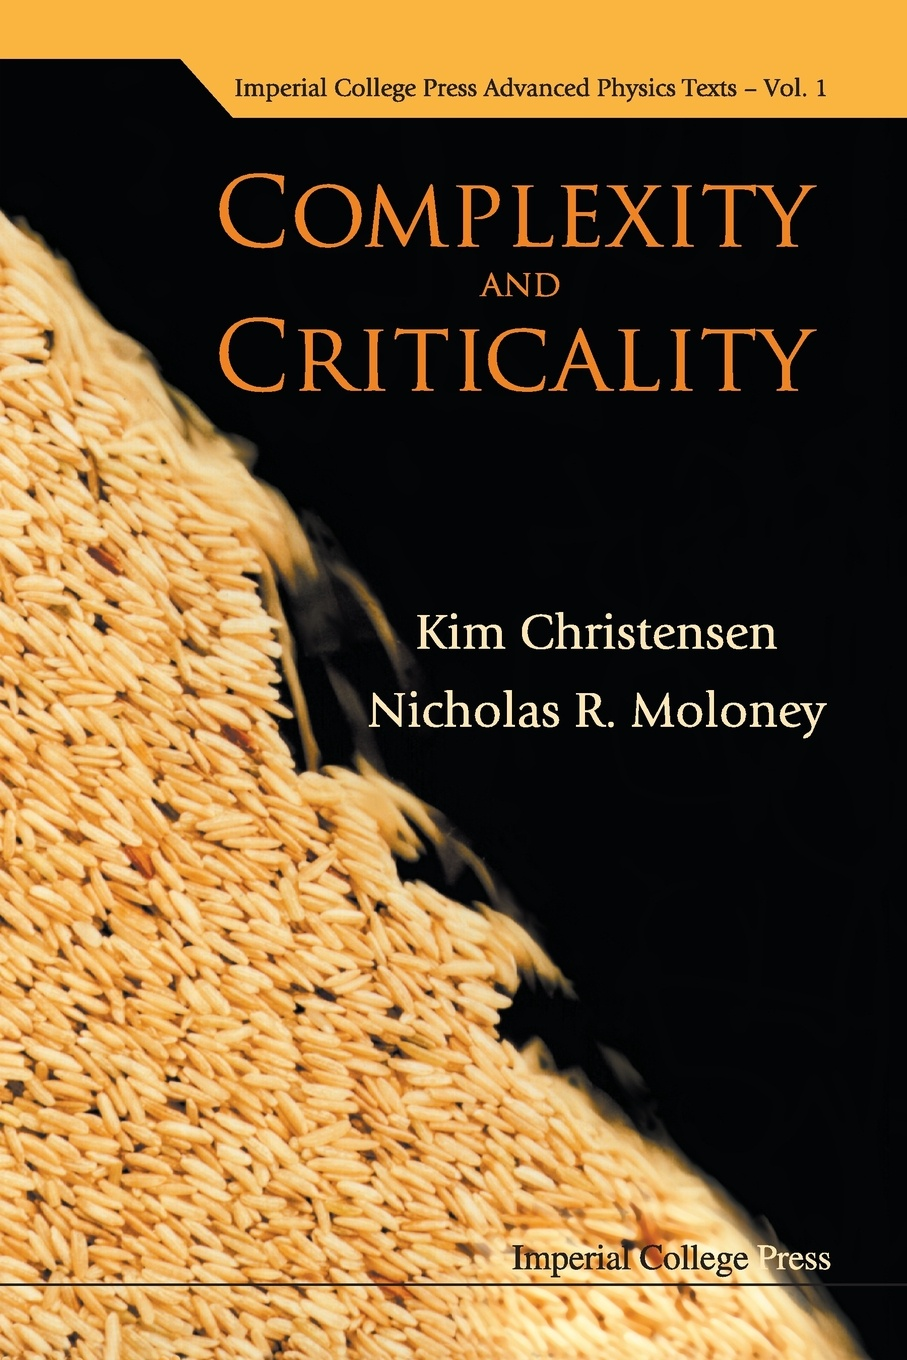 Kim Christensen, Nicholas R Moloney COMPLEXITY AND CRITICALITY dietmar plenz criticality in neural systems